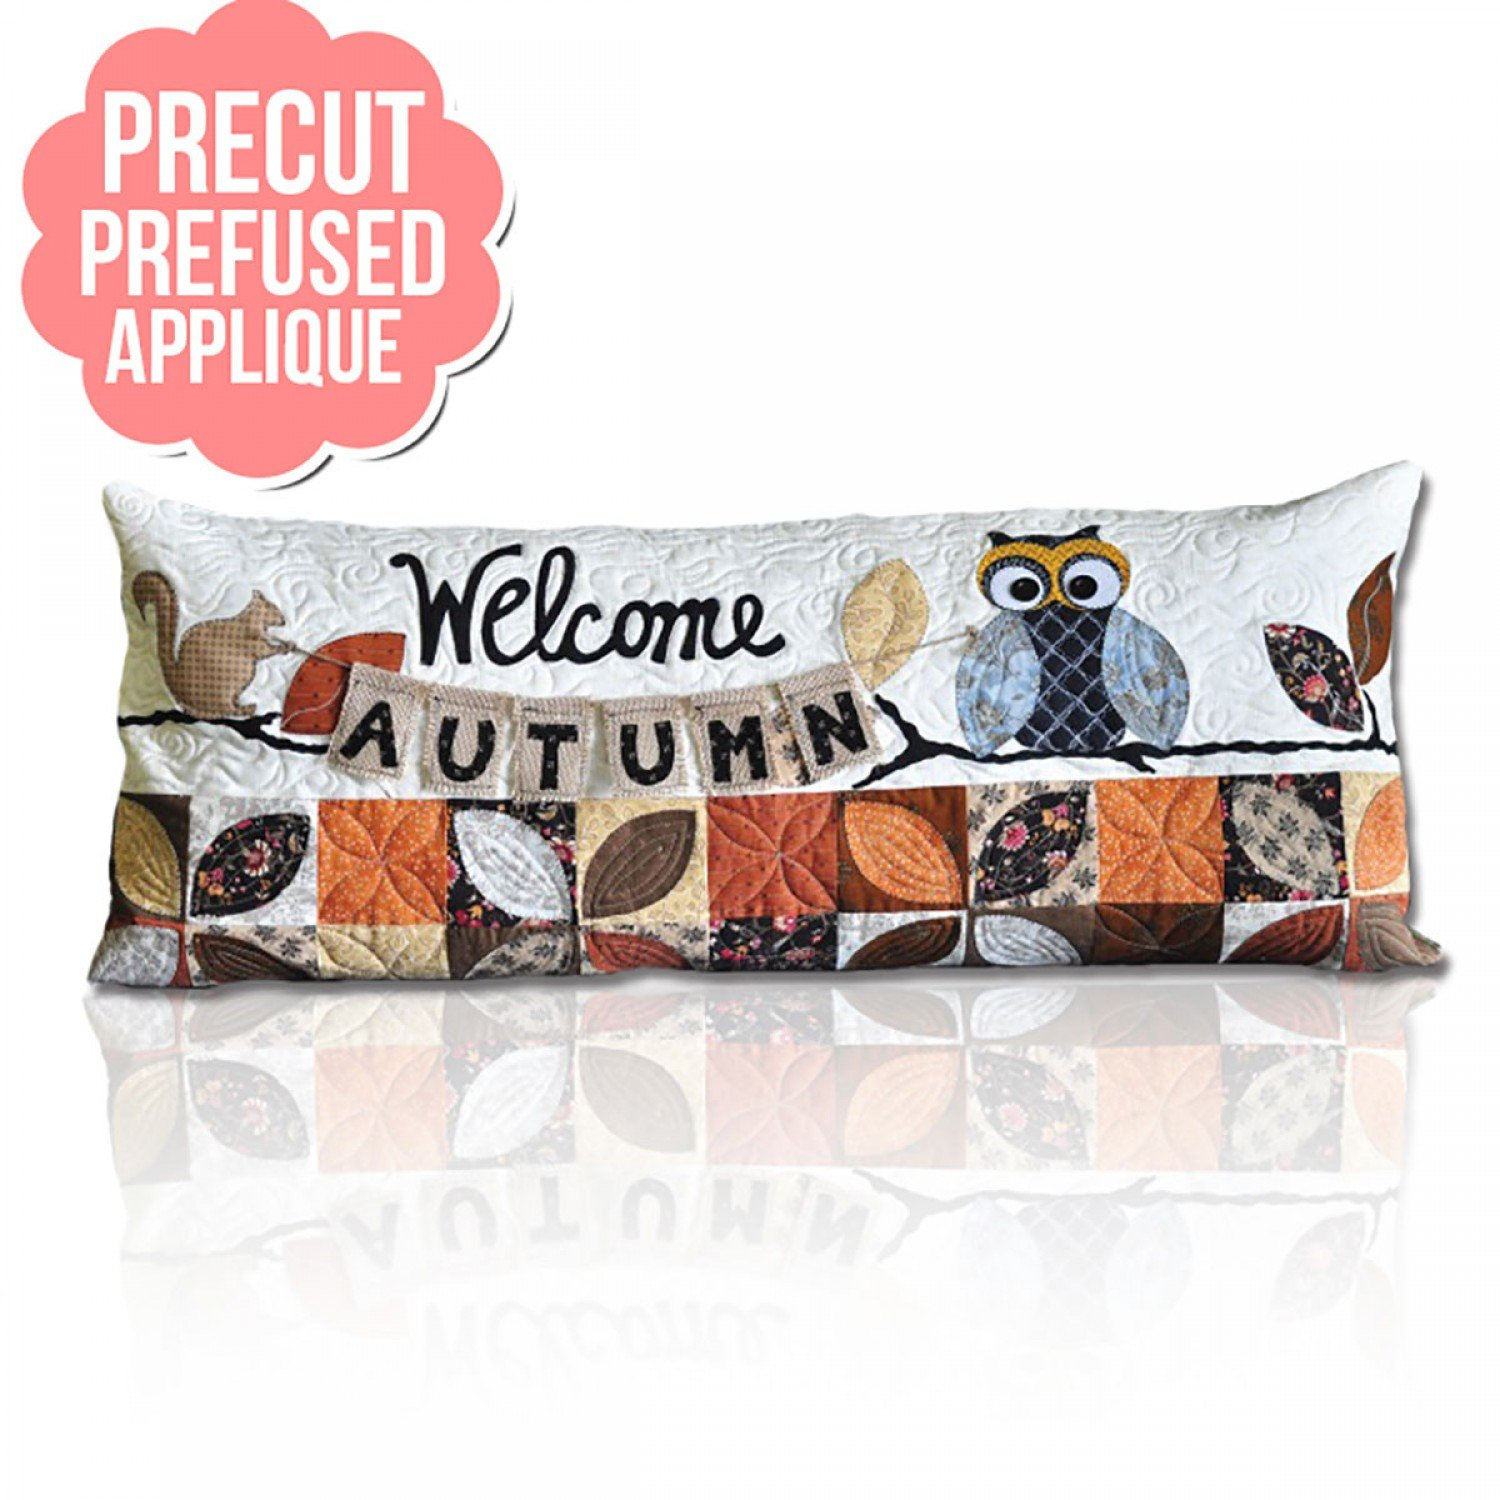 Welcome Autumn Bench Pillow Pre-Cut Pre-Fused Appliques with Pattern